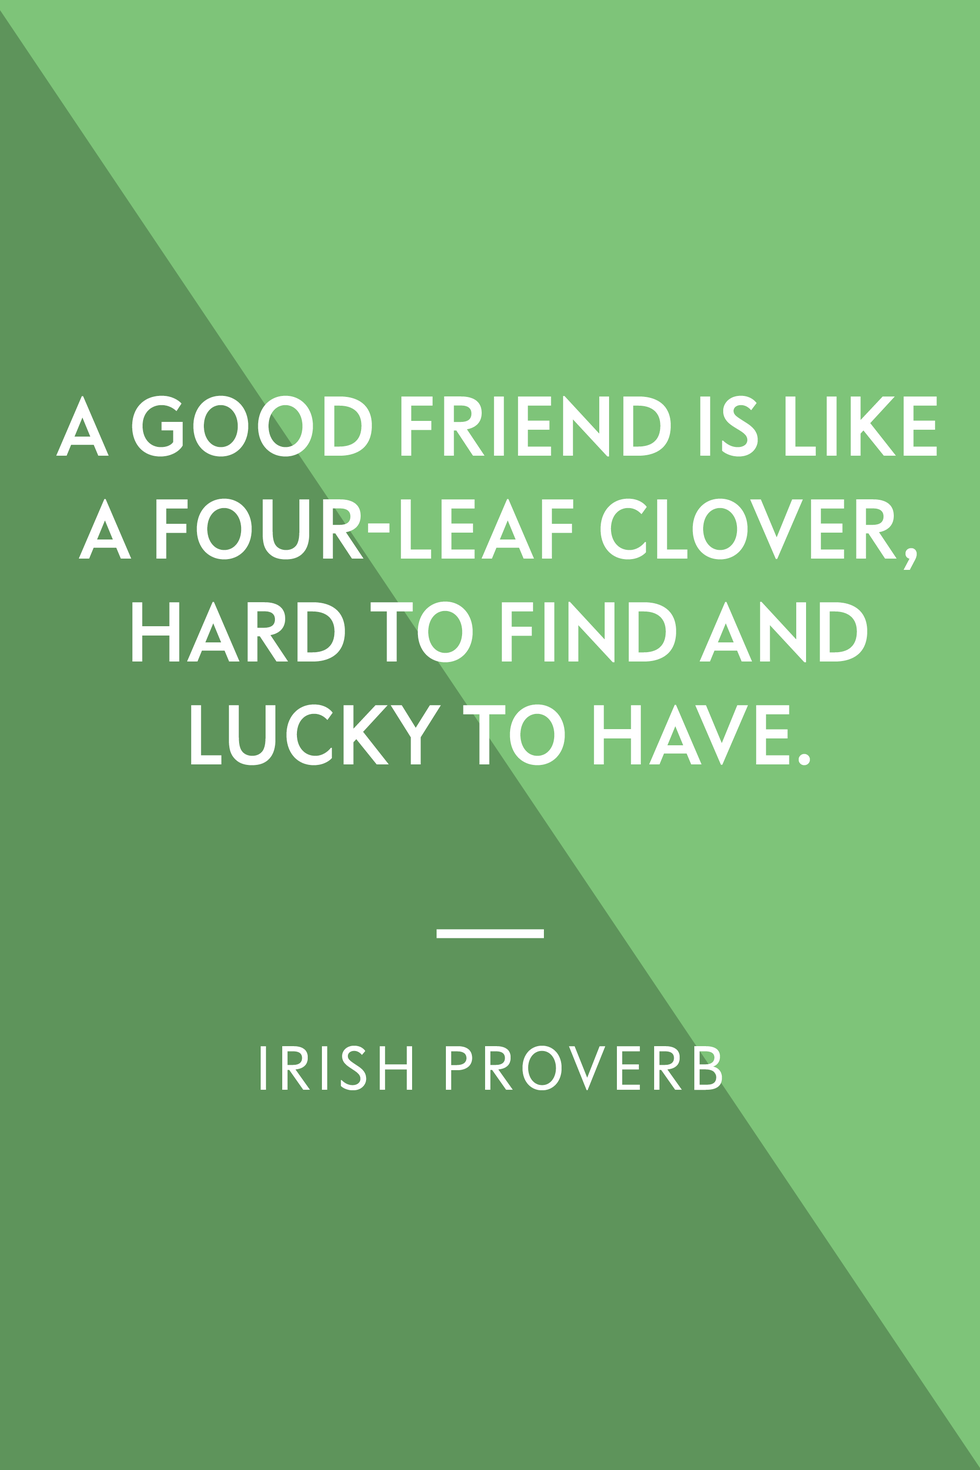 Saint Patricks Day Messages For Him Her Friends Mom Dad Bro Sis Wife Husband St Patricks Day Quotes Beautiful Day Quotes Fun Quotes Funny